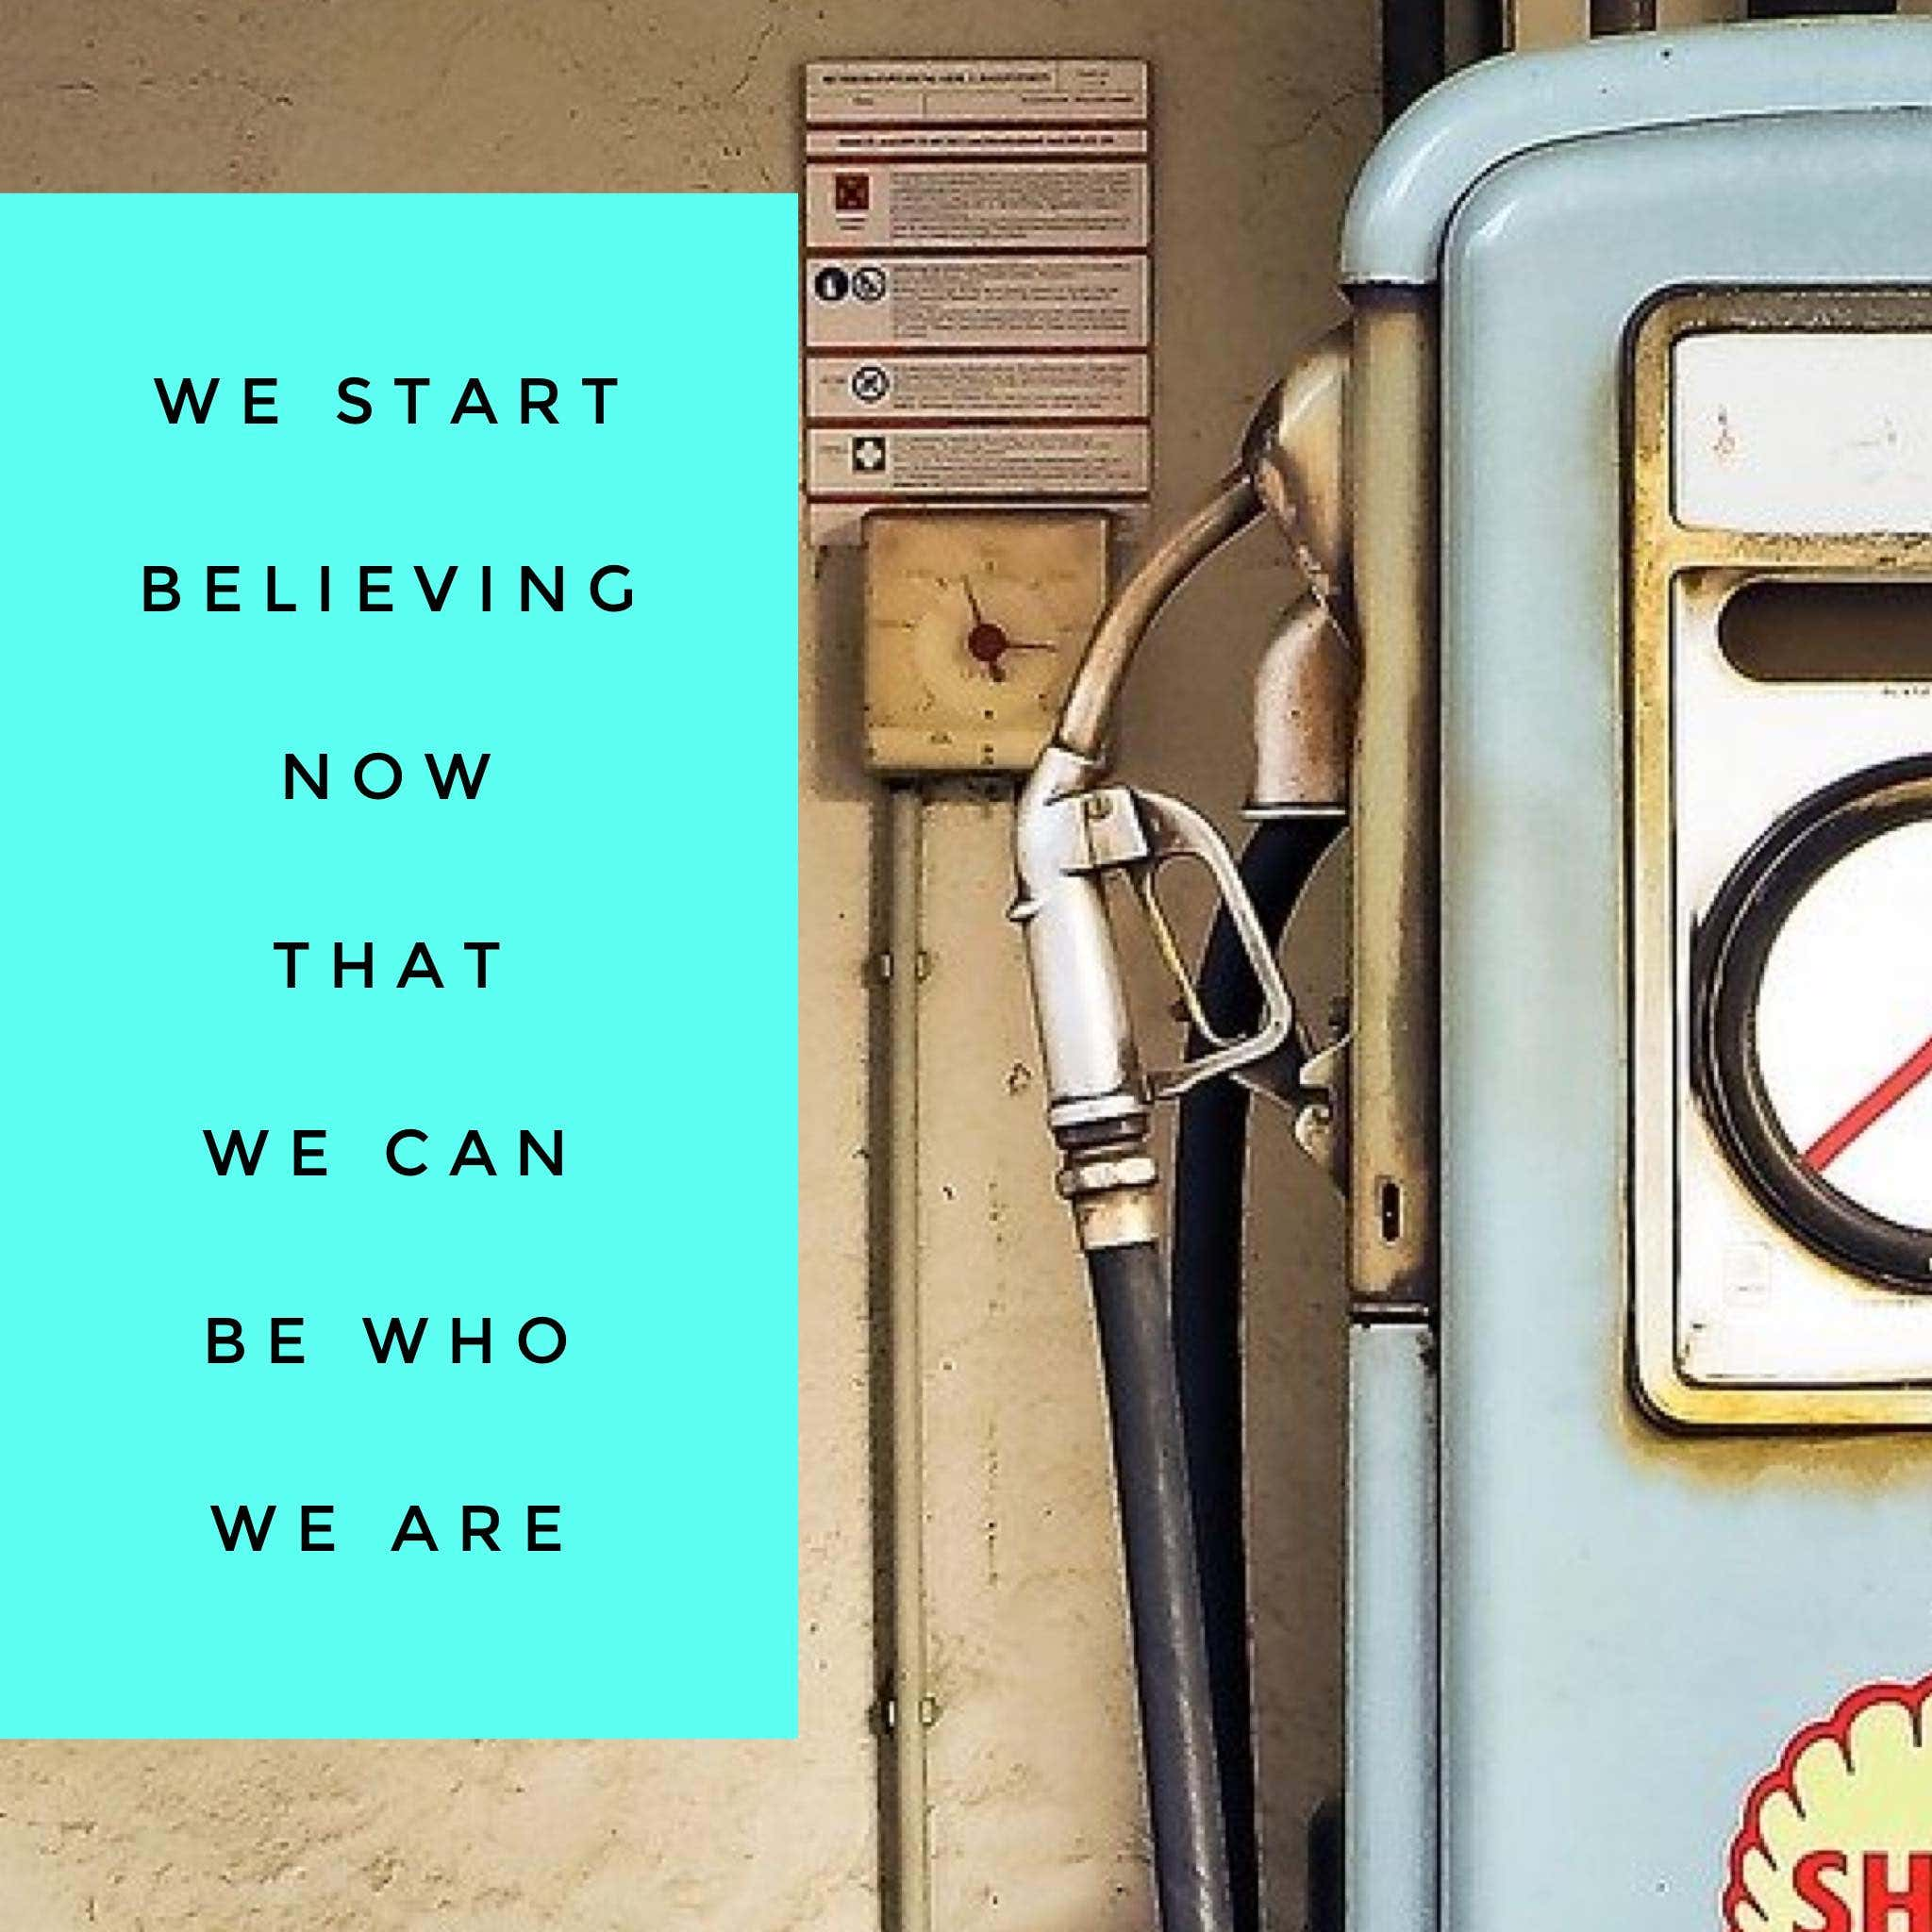 We start believing now that we can be who we are